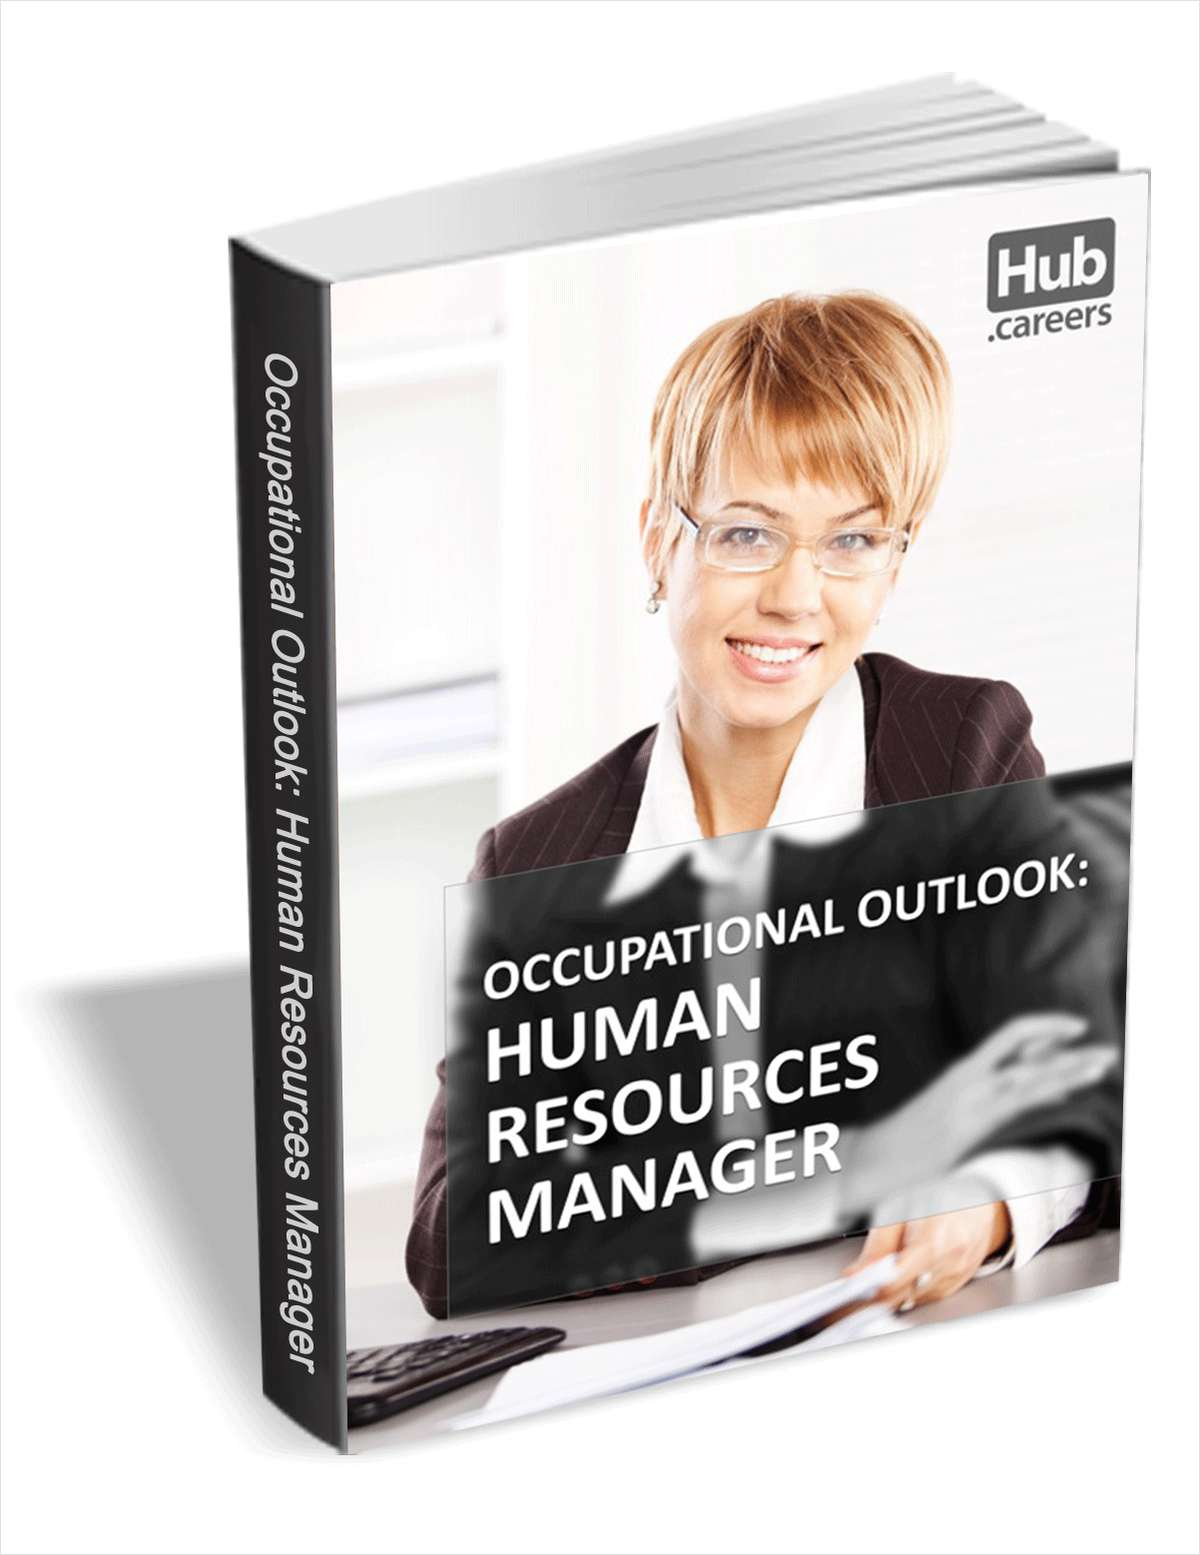 Human Resources Managers - Occupational Outlook